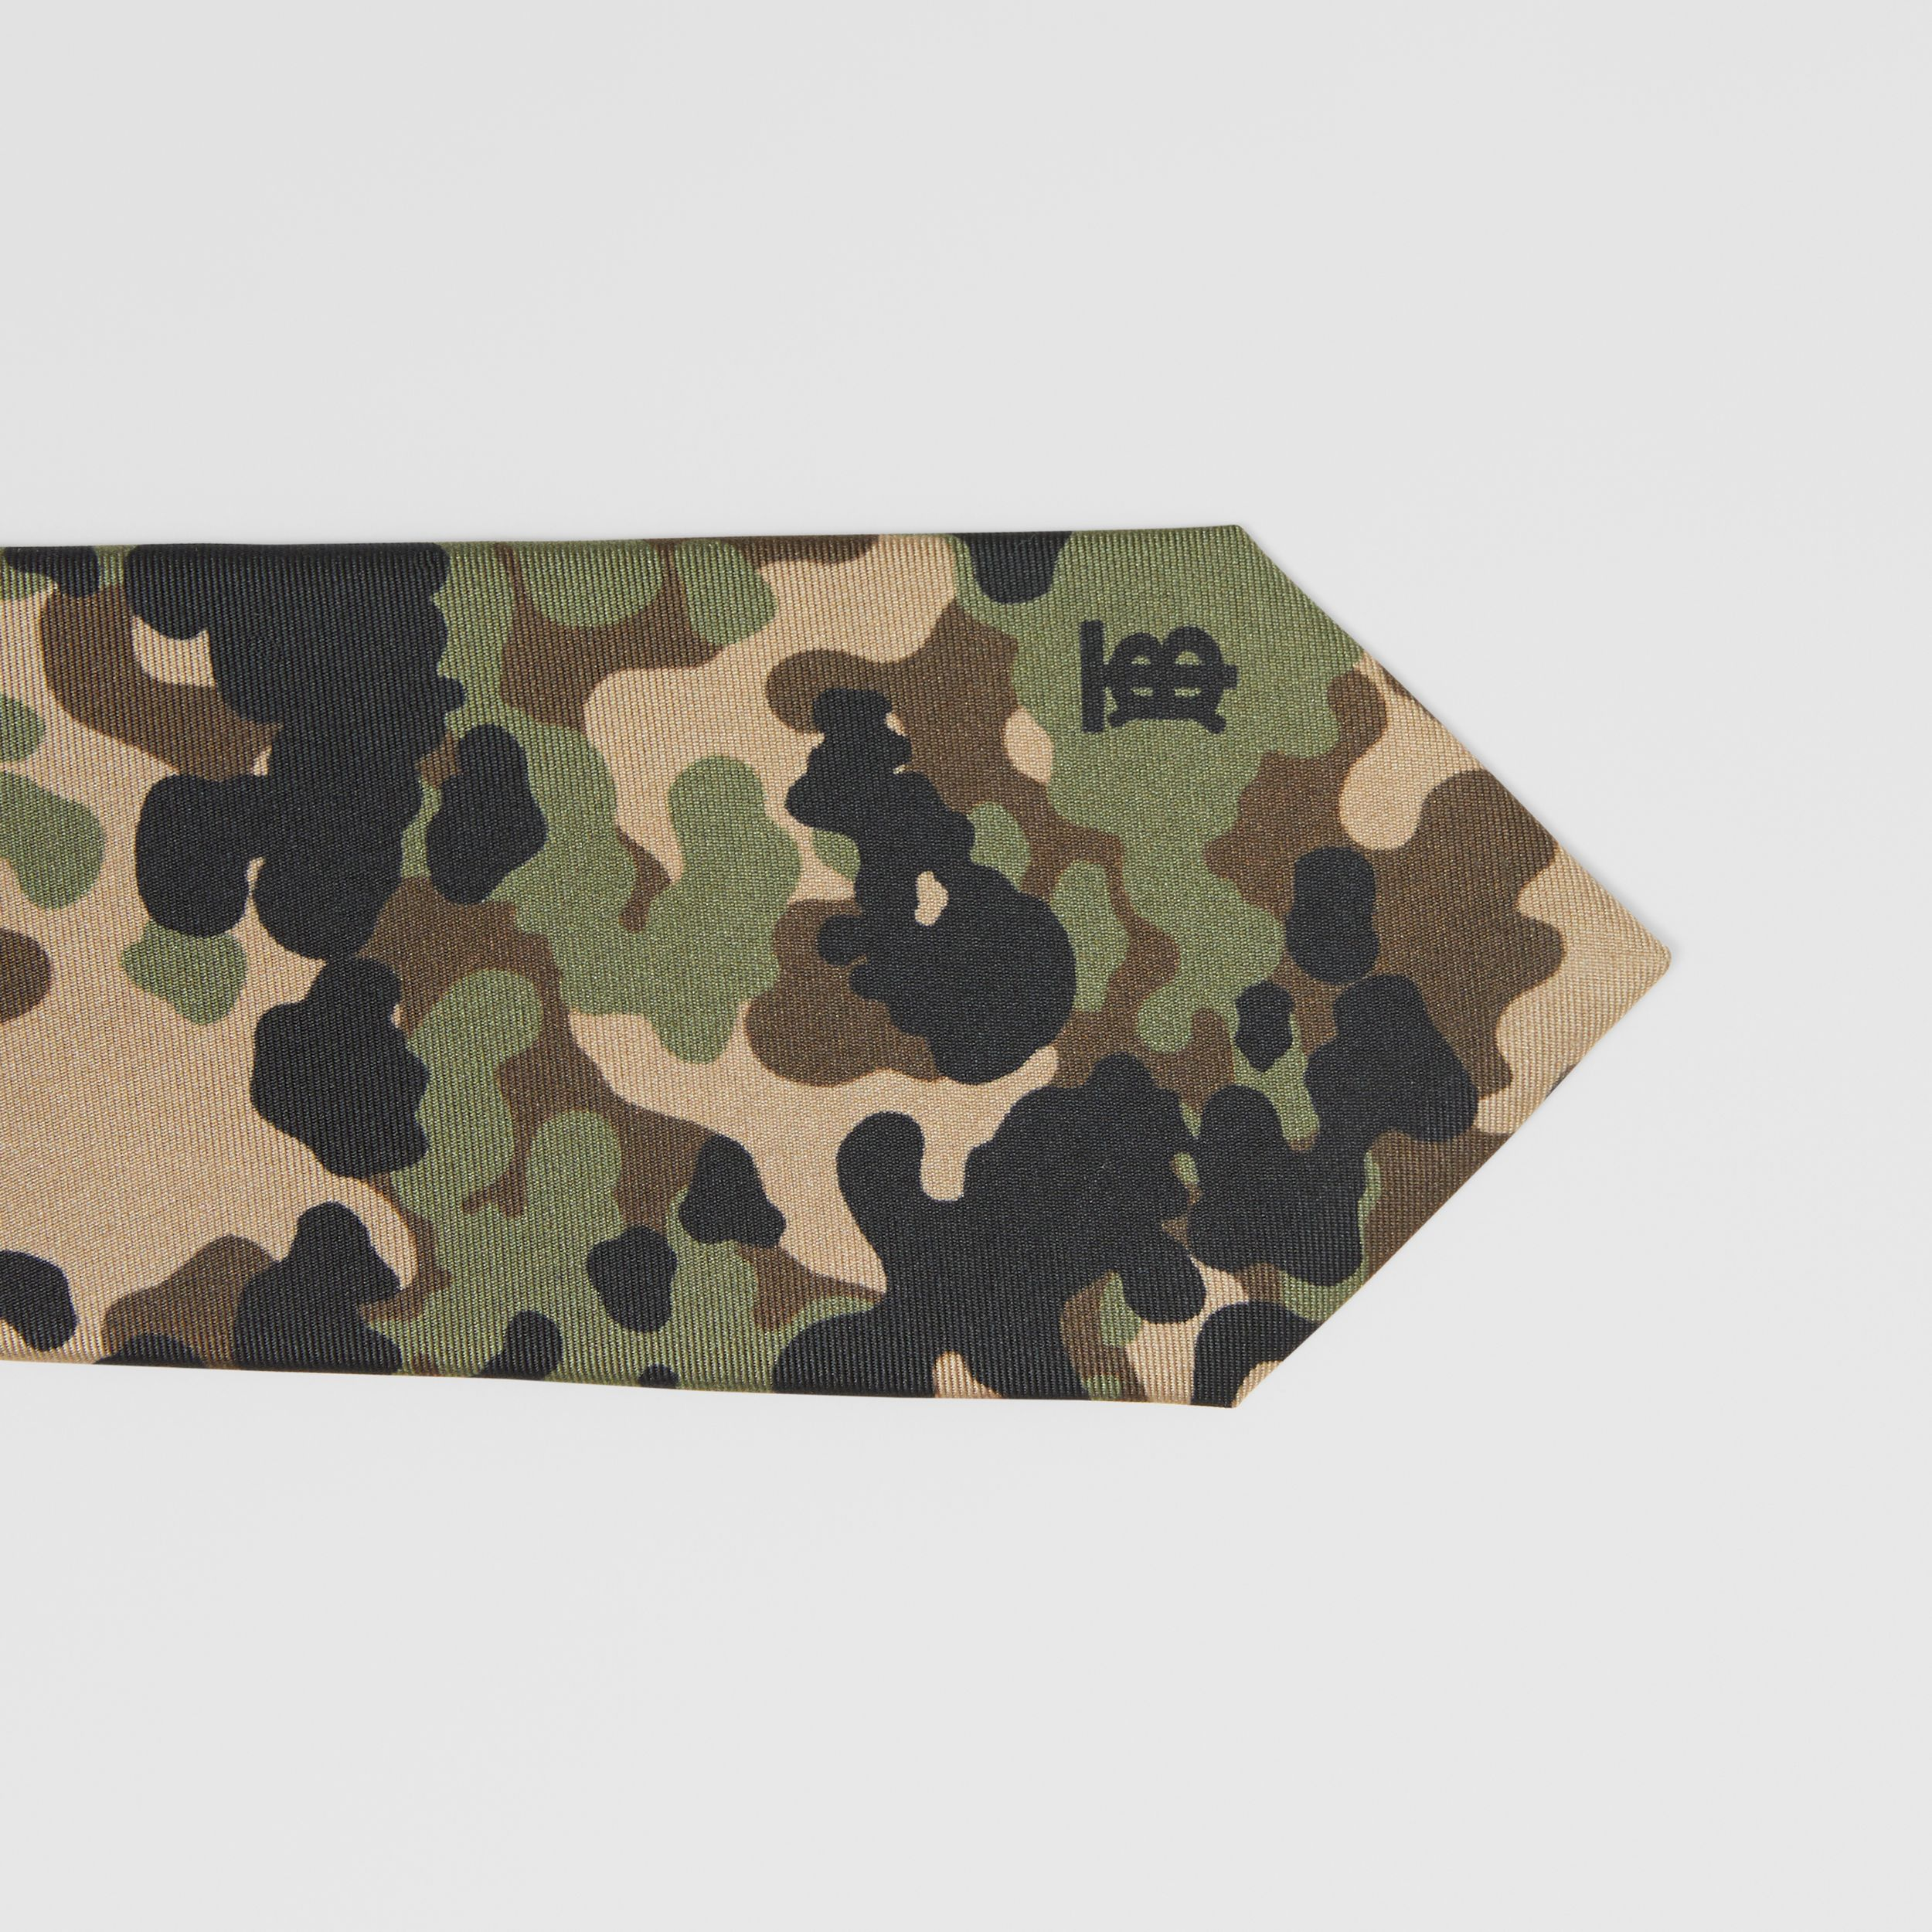 Classic Cut Camouflage Print Silk Tie in Khaki Green - Men | Burberry - 2